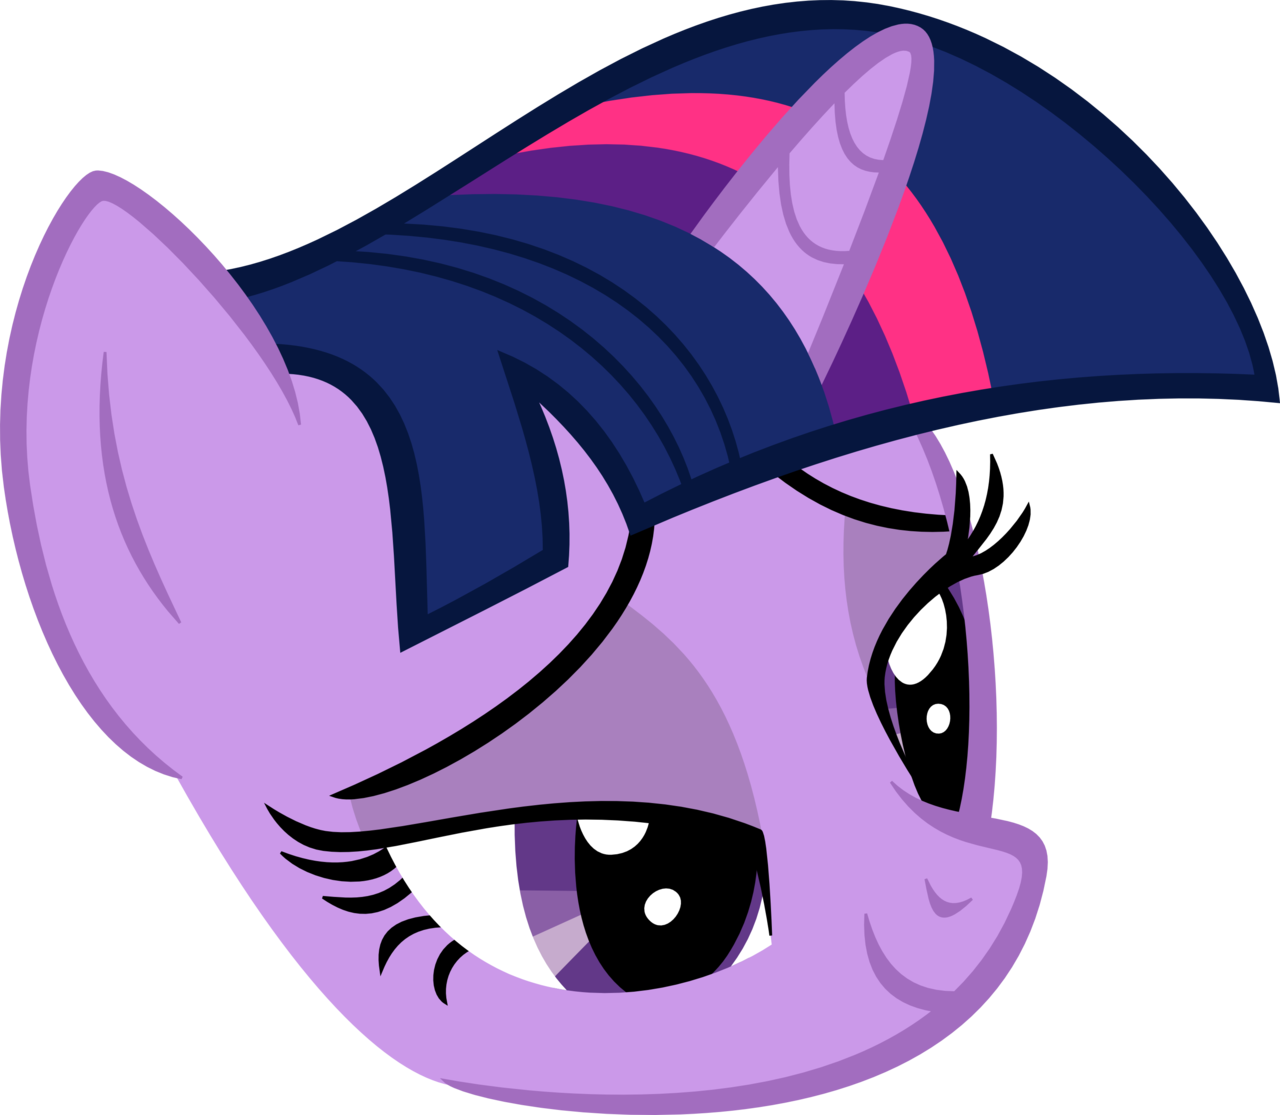 Twilight head by Droxtor on DeviantArt.